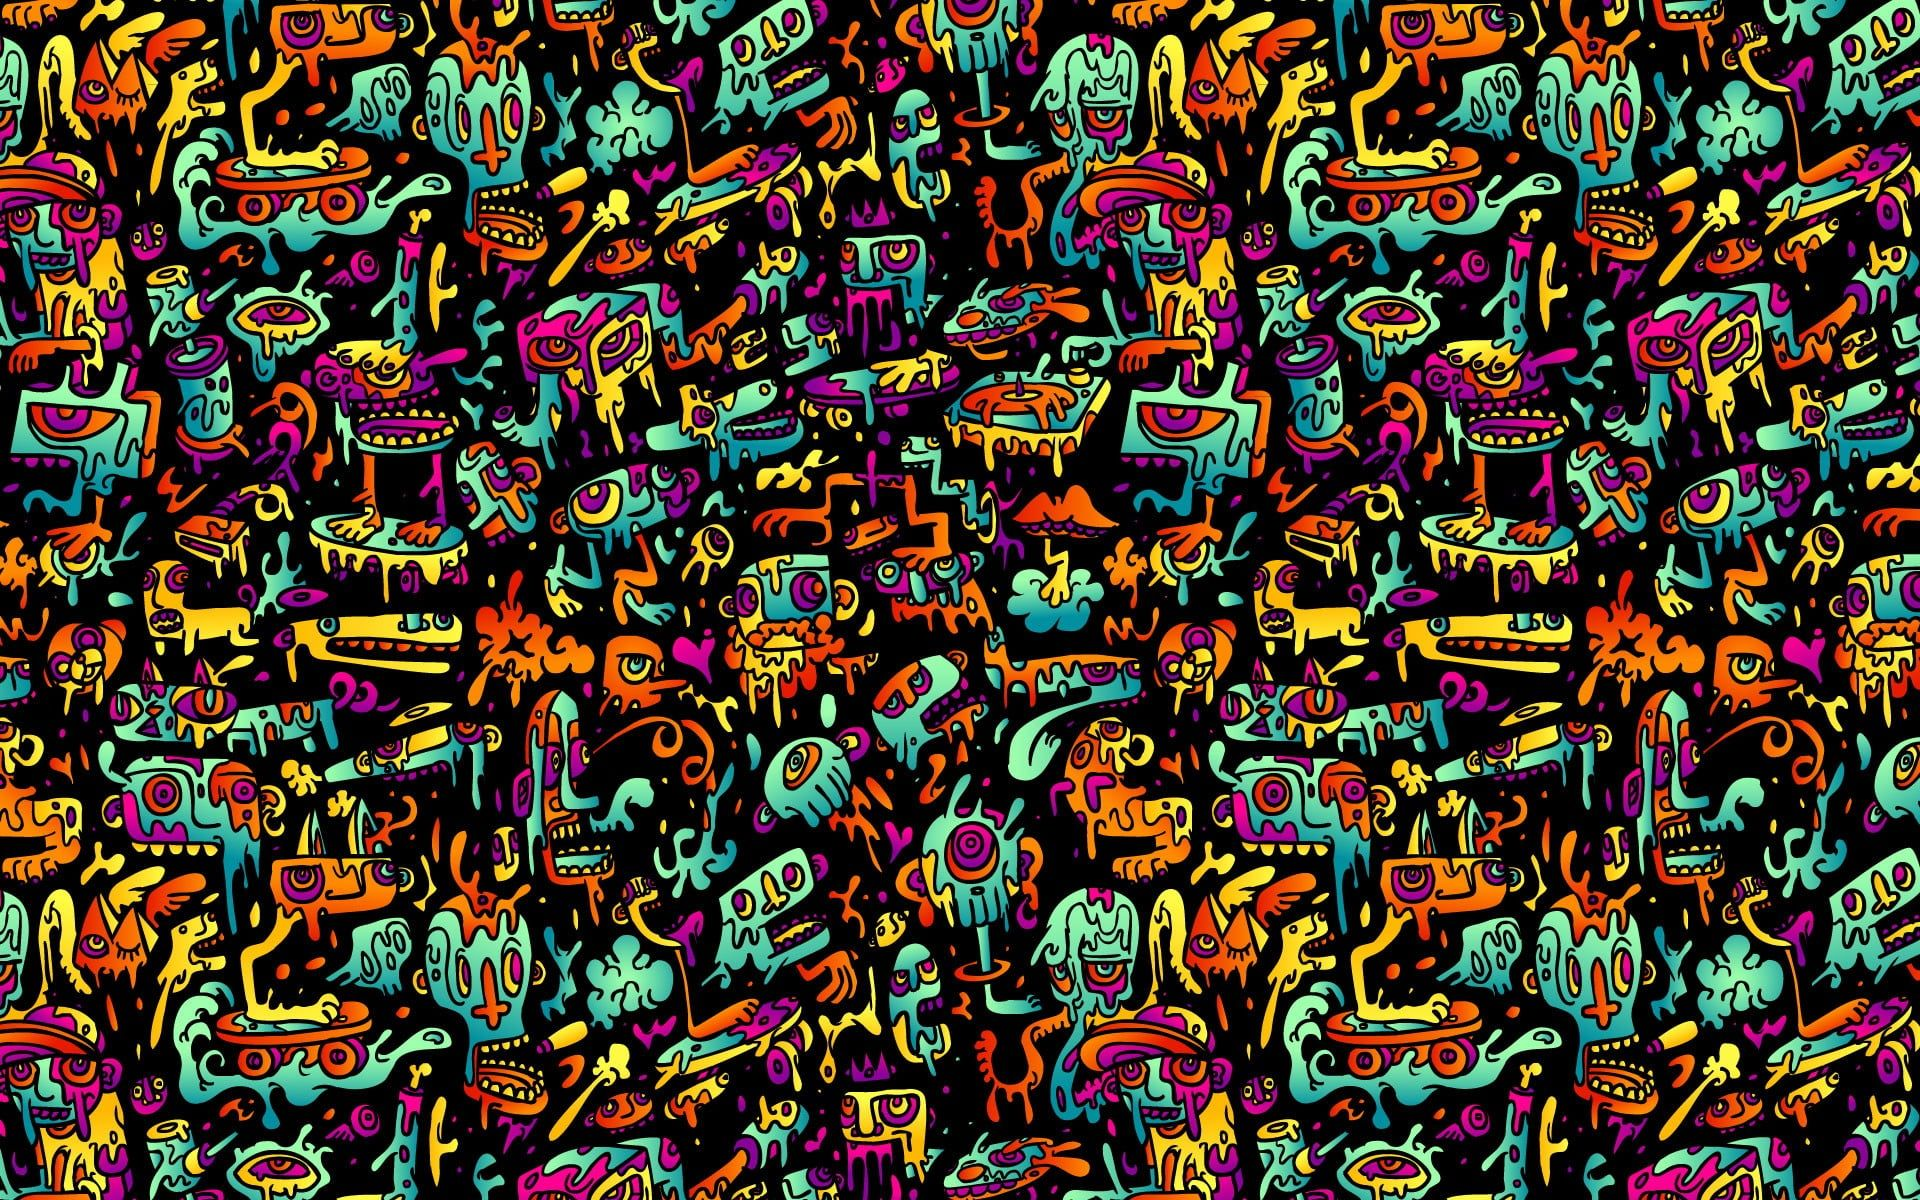 Multicolored Doodle Wallpaper Abstract Colorful 1080p Wallpaper Hdwallpaper Desktop Psychedelic Wallpaper Doodle Wallpaper Abstract Wallpaper